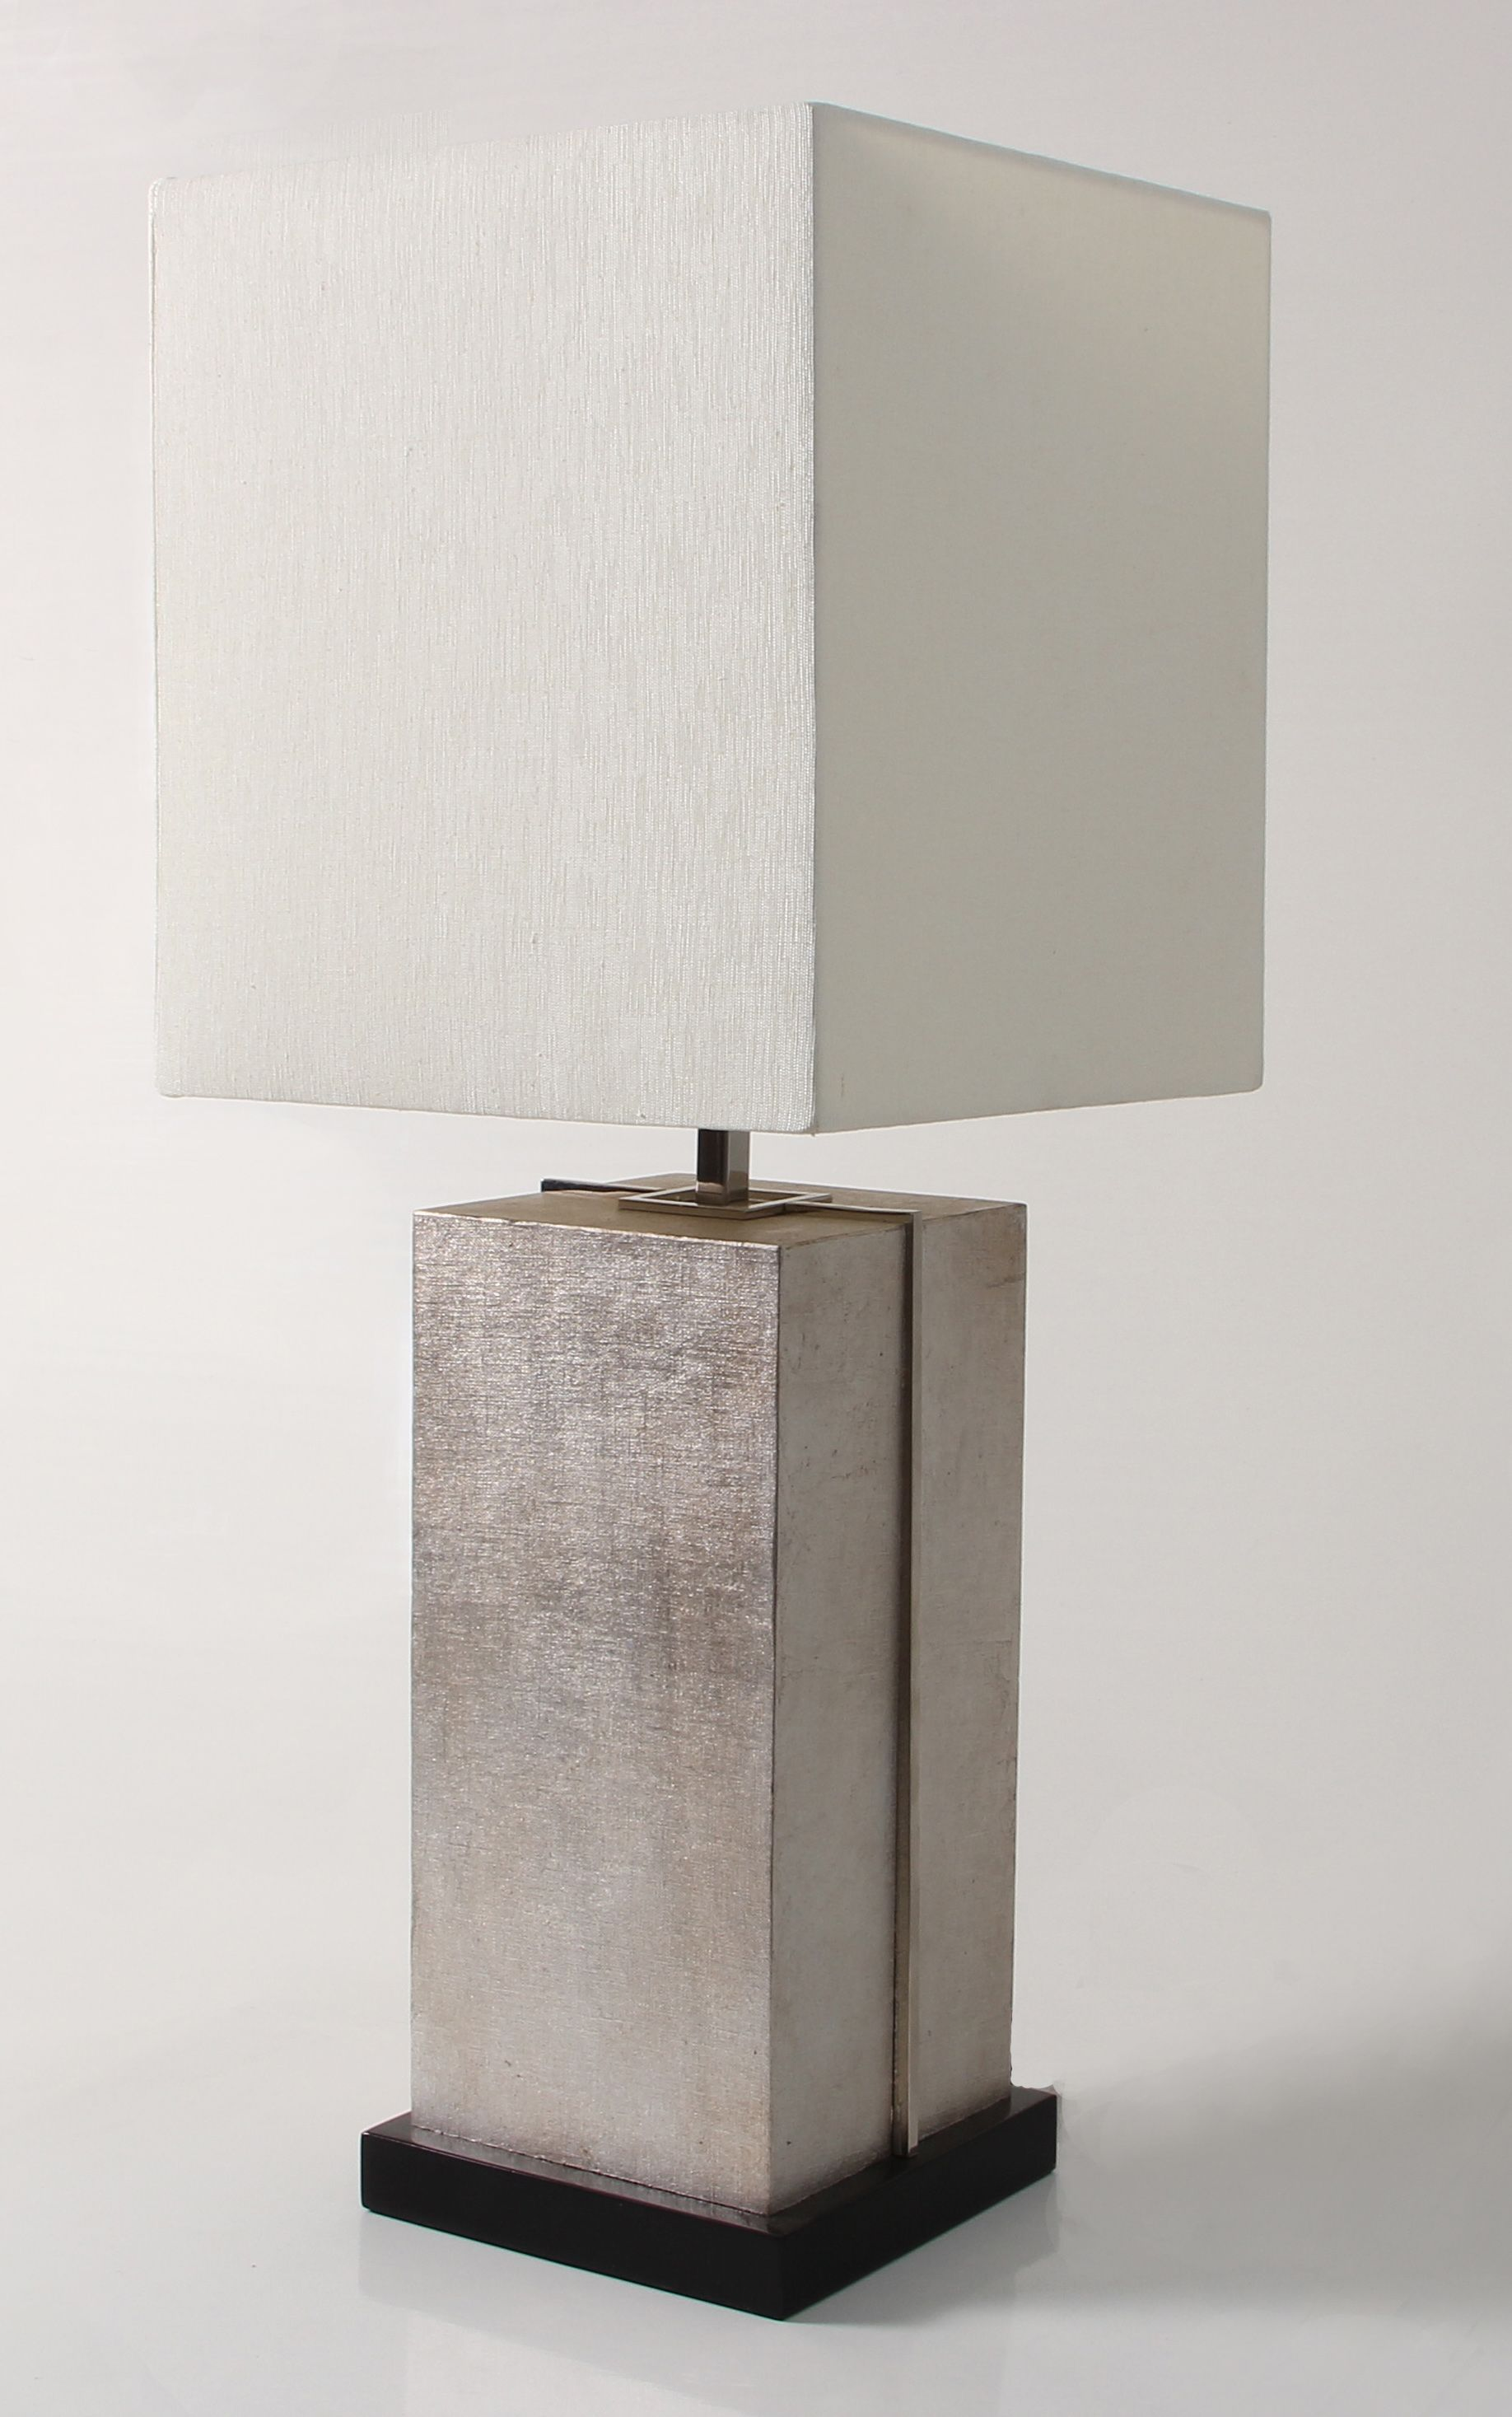 The Larken Lamp Is A Stylish Table Lamp Design Made From Stainless Steel  And Antiqued Silver